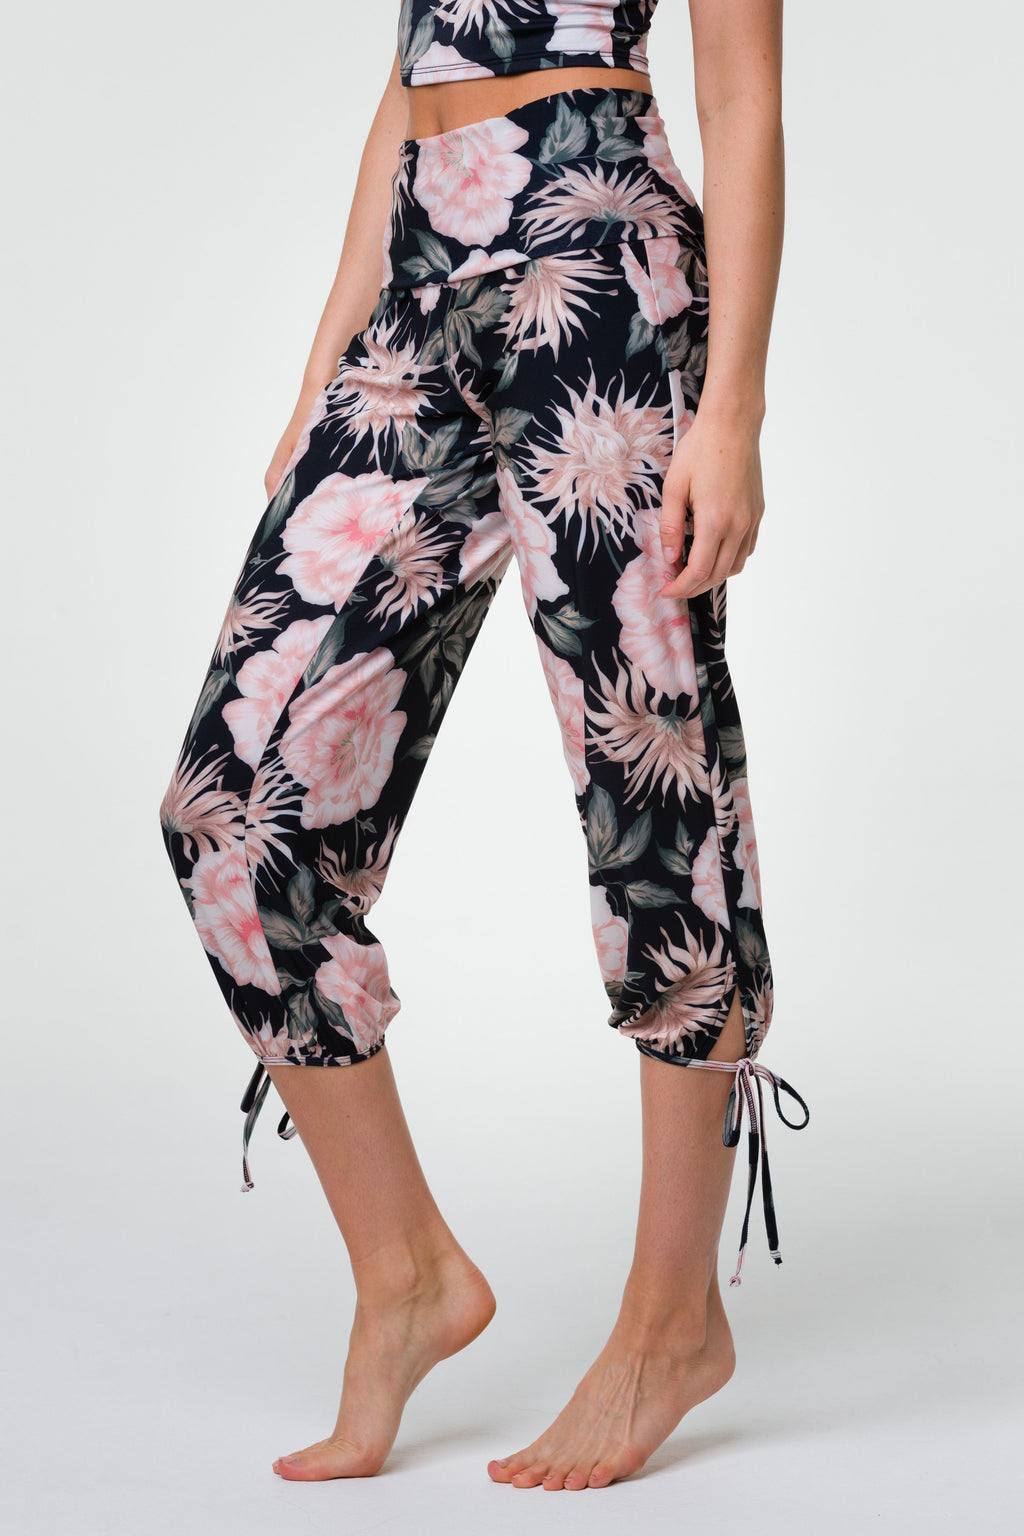 'Gypsy Pant' - new prints